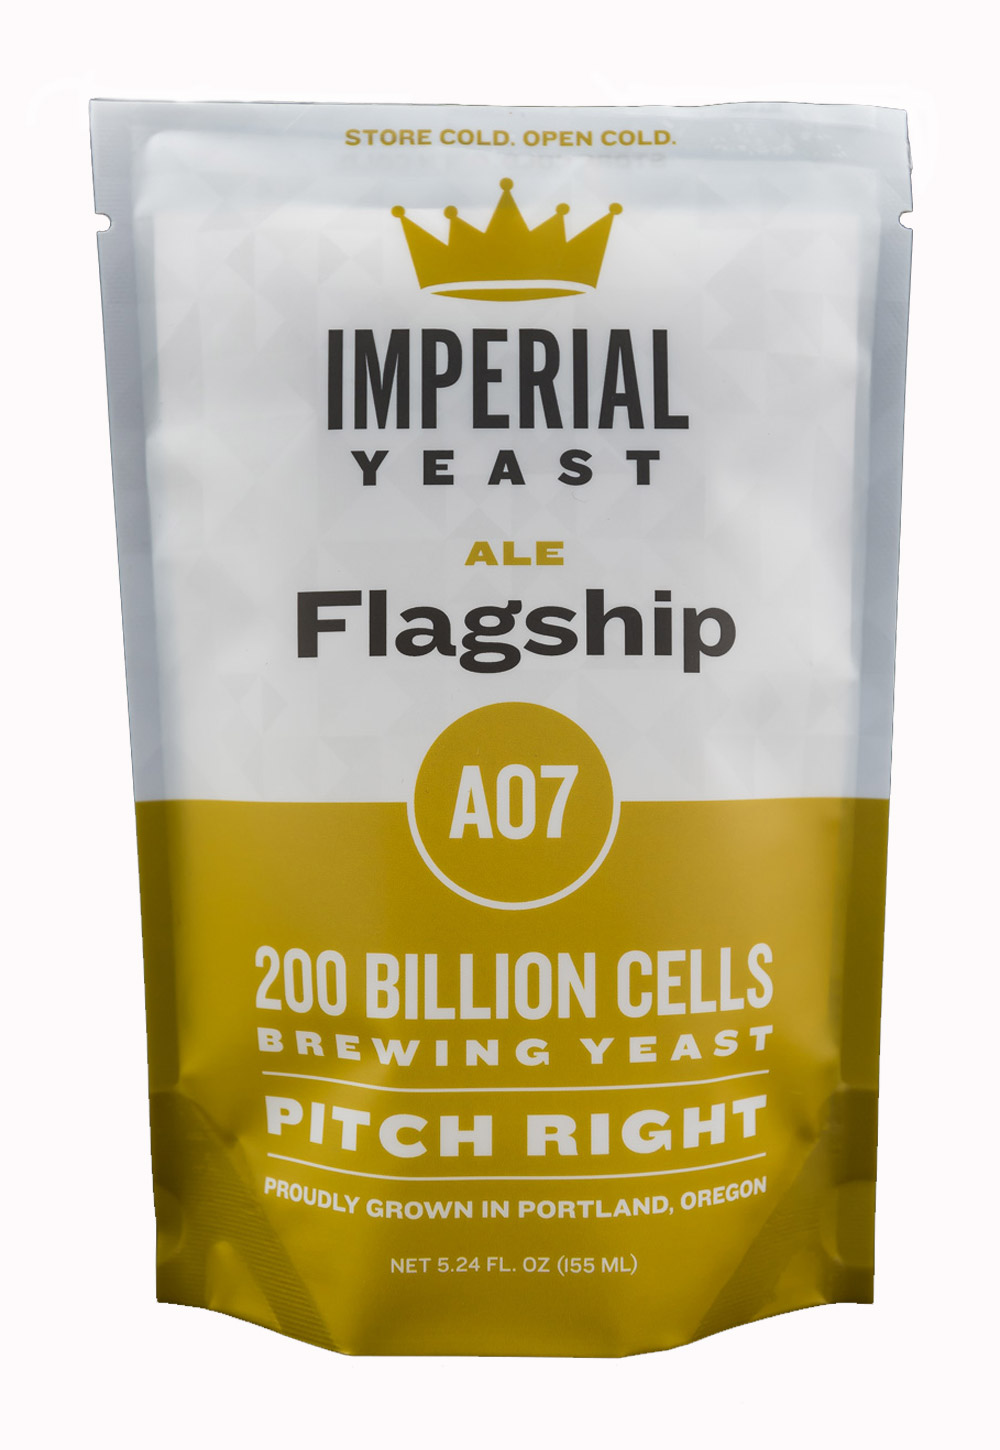 A07 Flagship Ale Yeast from Imperial Yeast